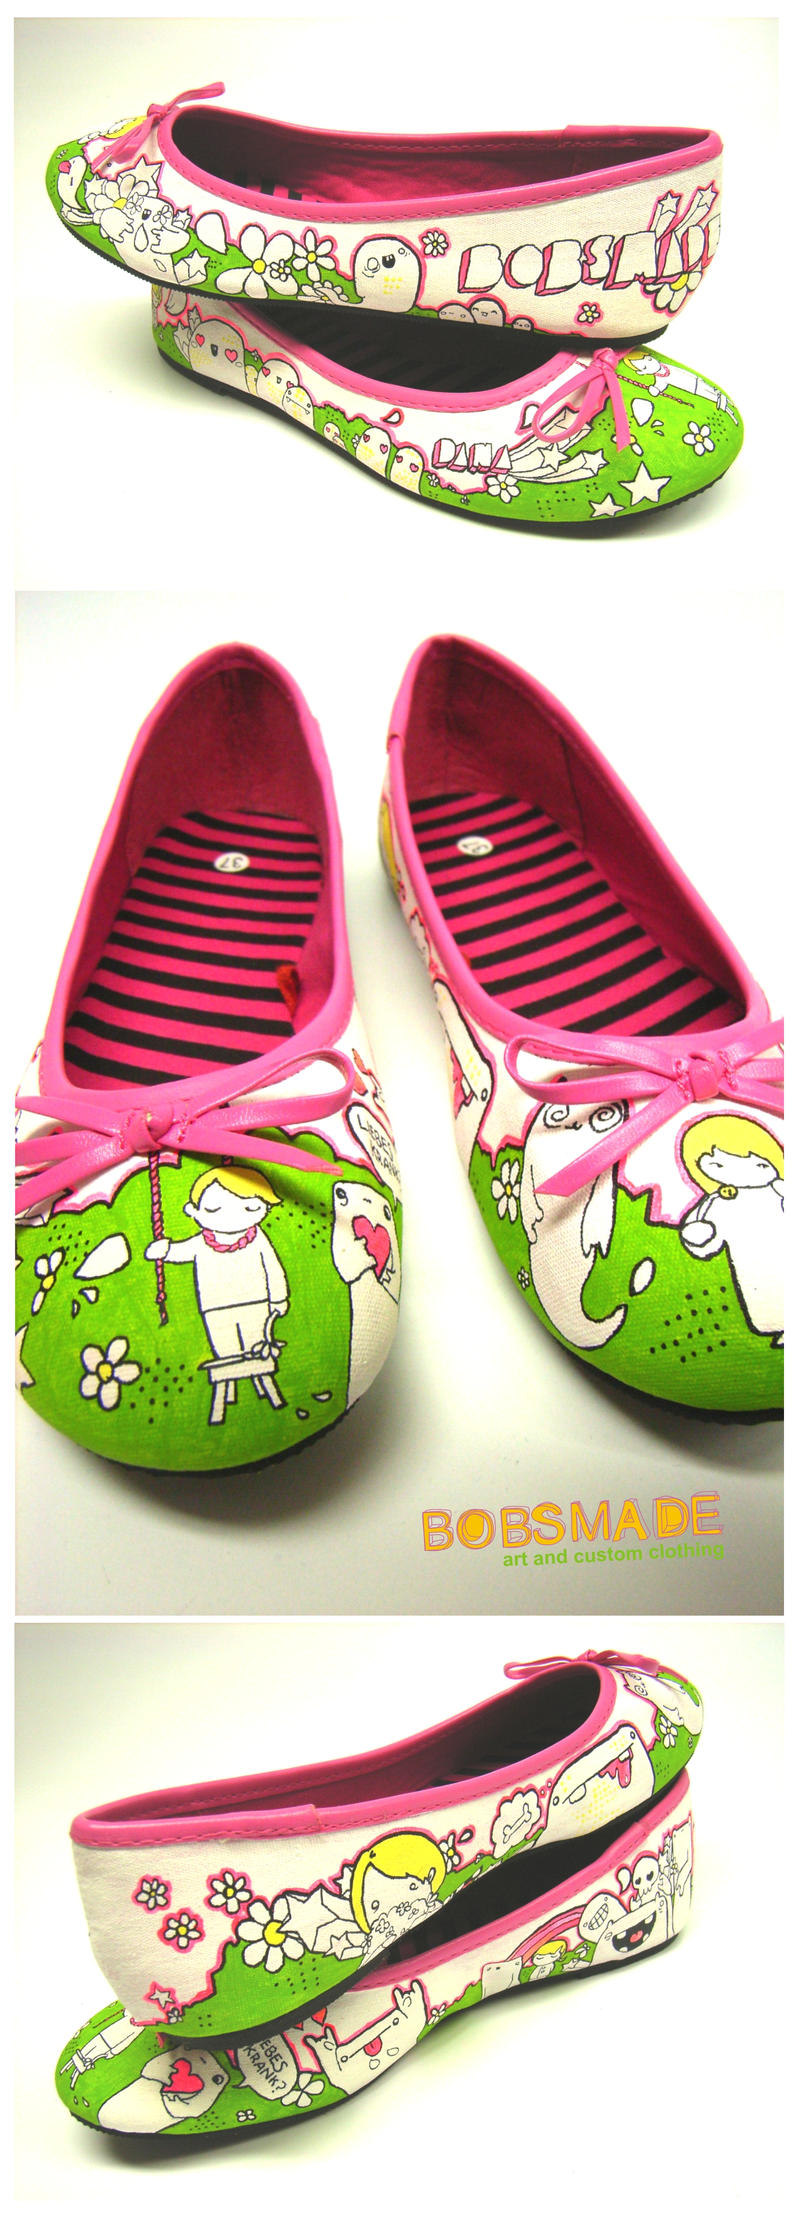 bobsmade_shoes-loveSICK by Bobsmade